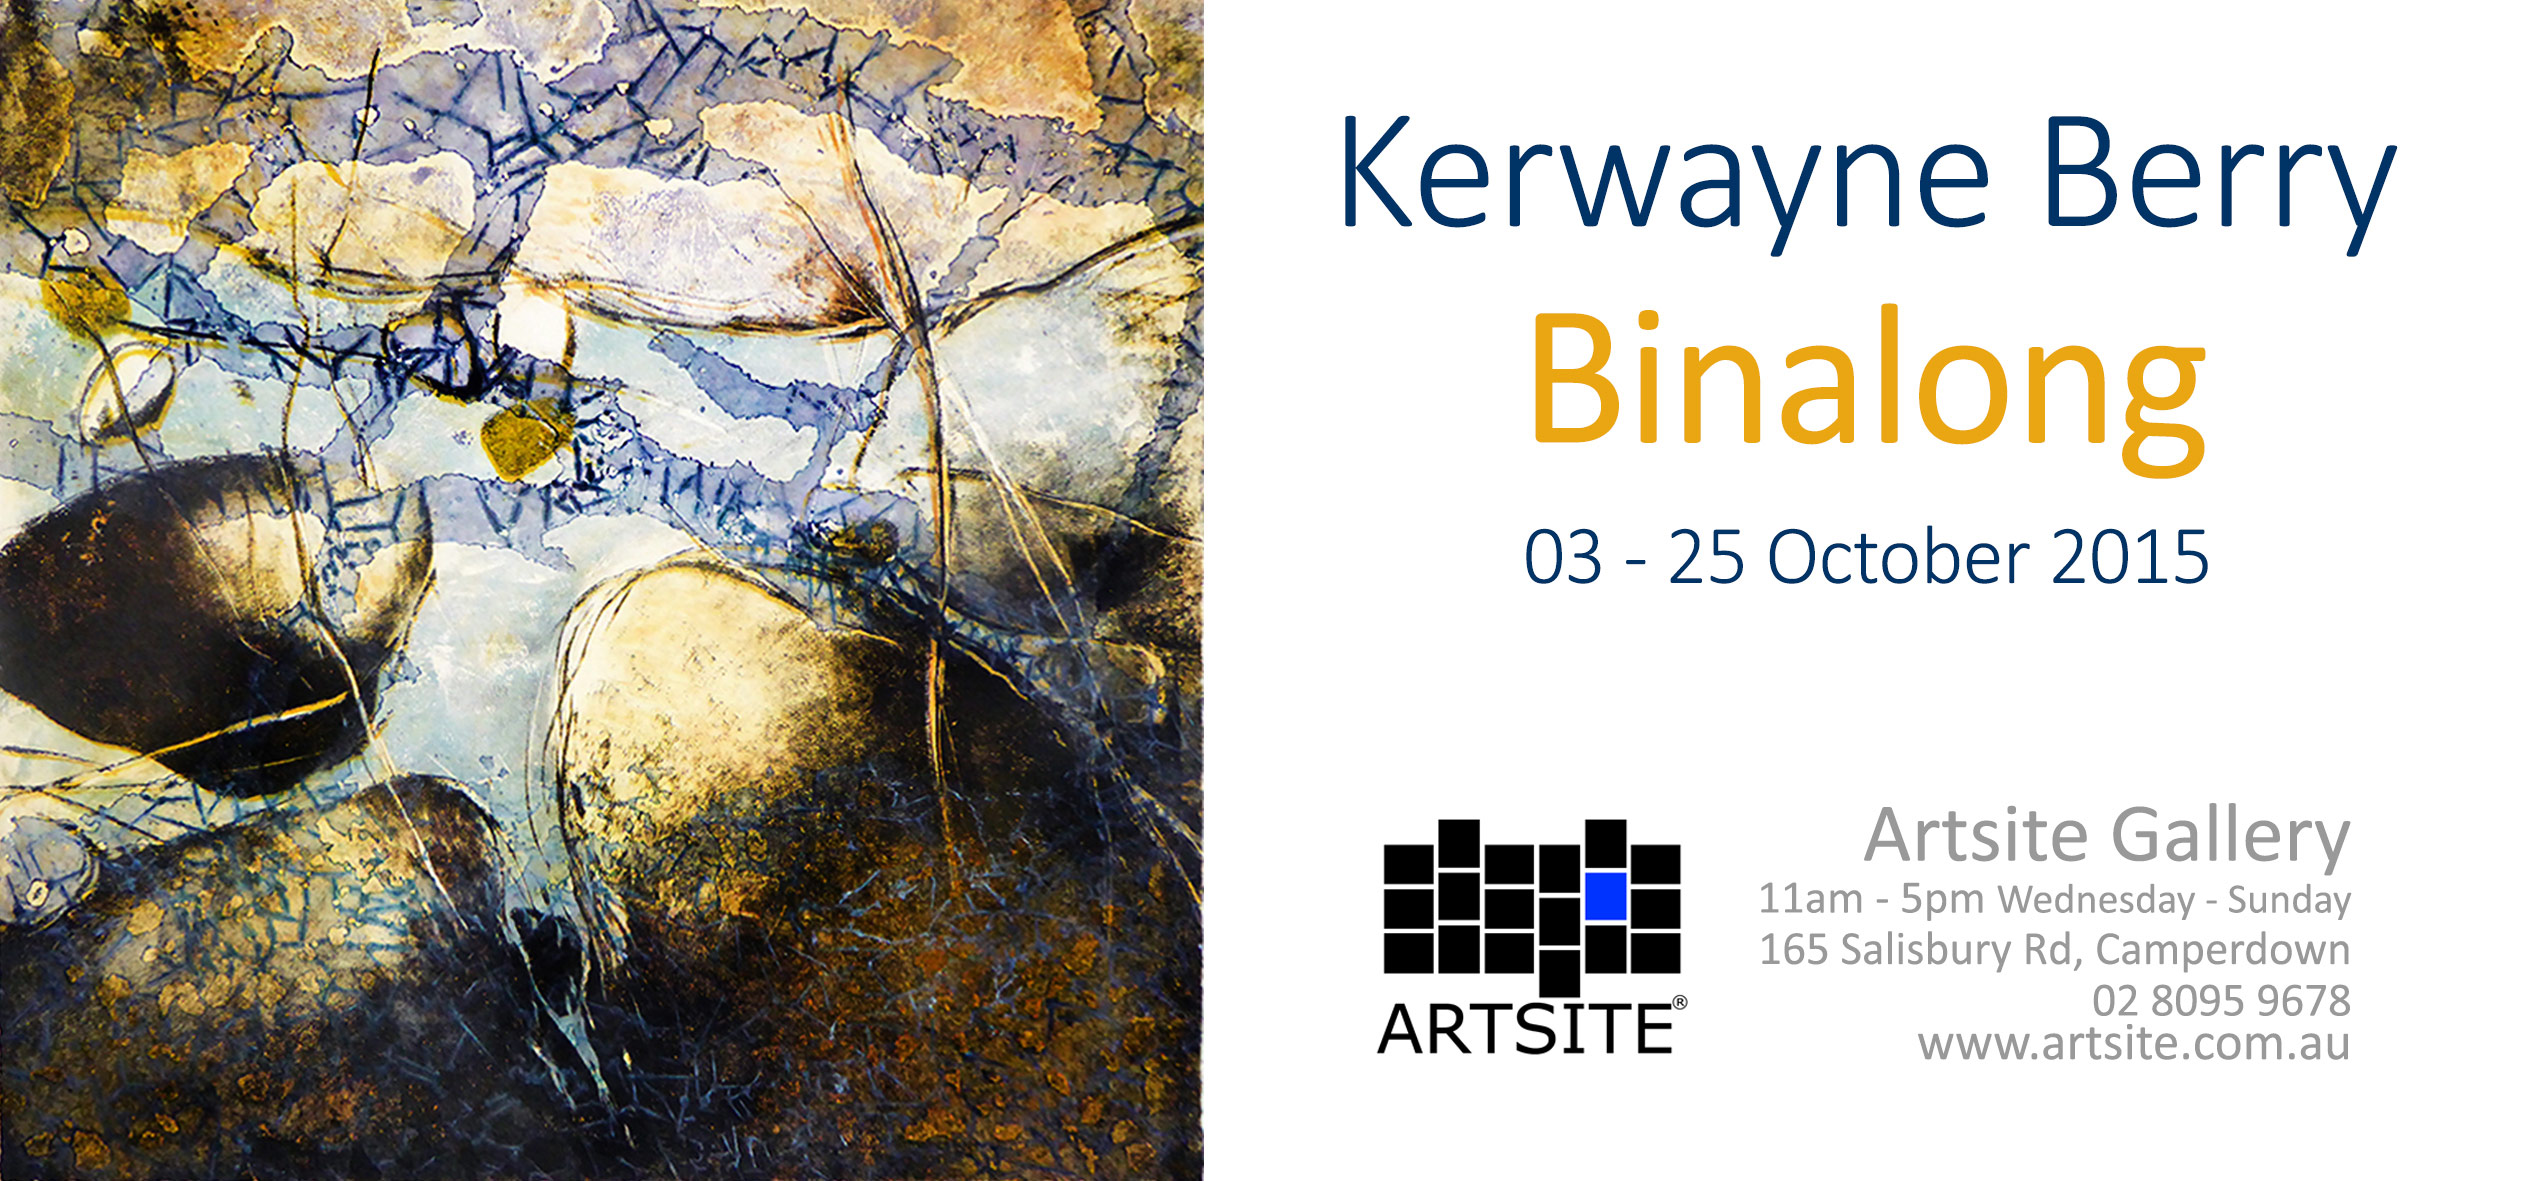 View Exhibition at Artsite Gallery, Sydney: 03 - 25 October 2015: Kerwayne Berry - Binalong